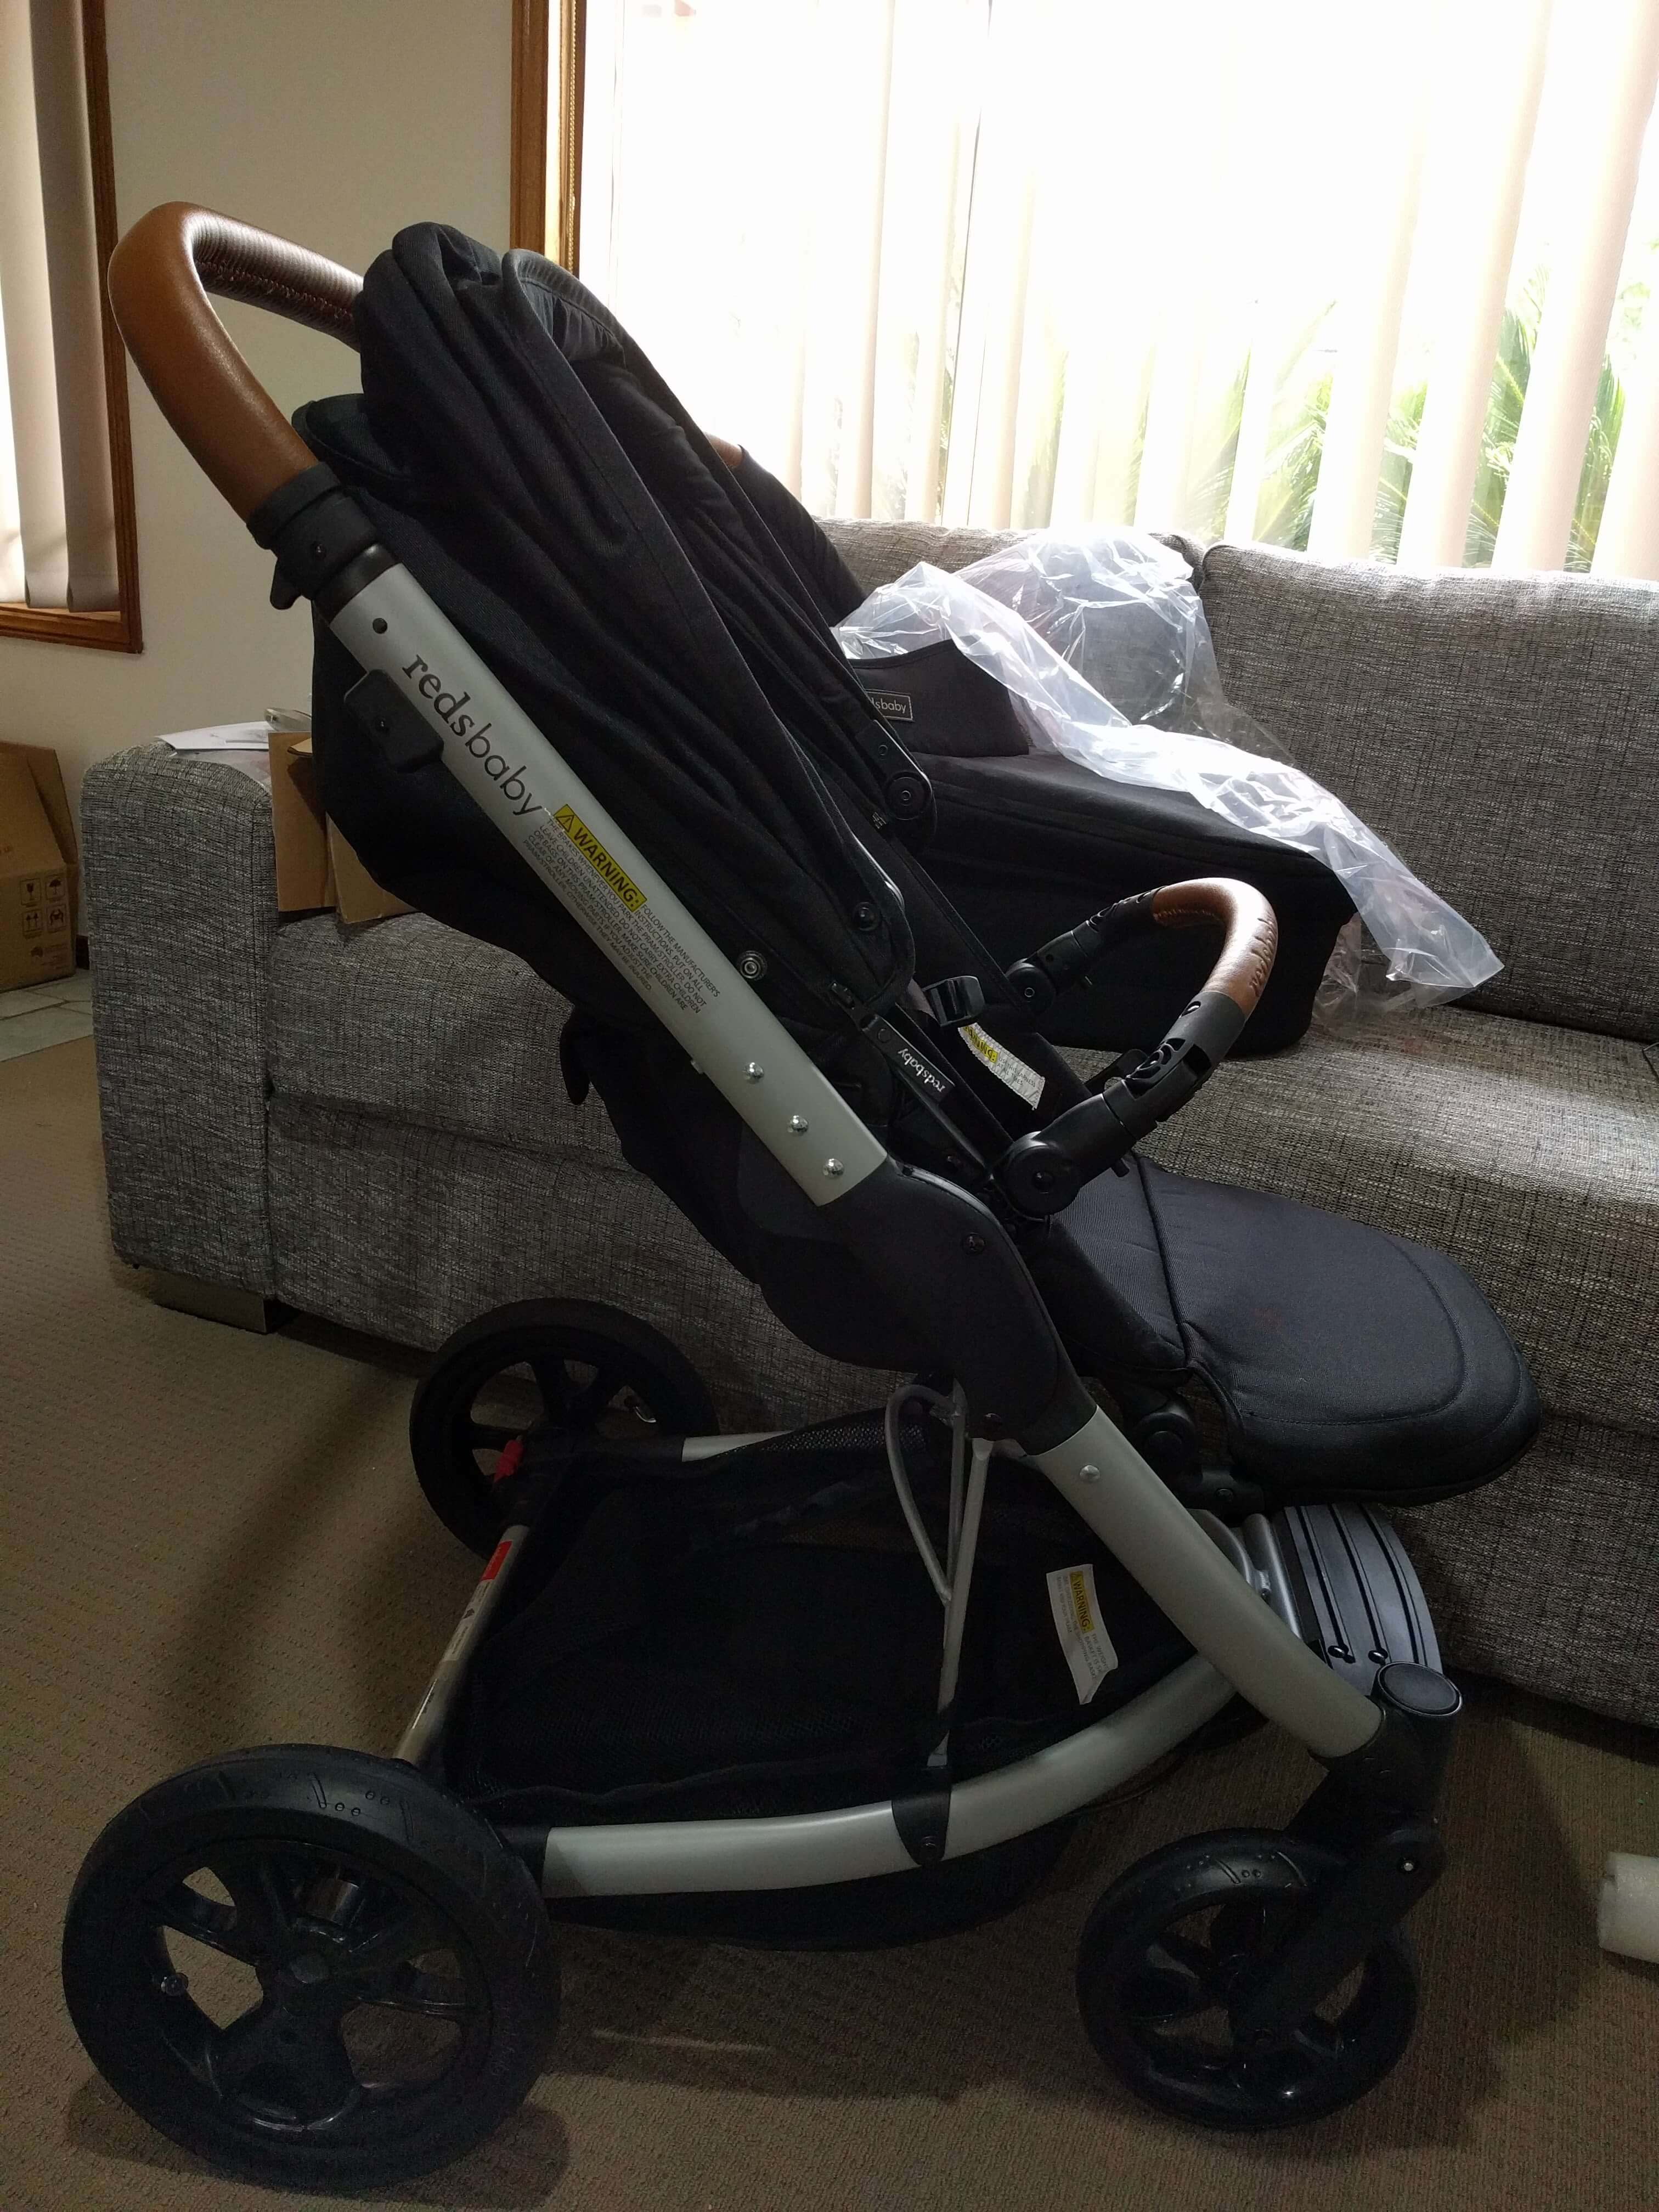 Redsbaby Jive review - side view of the pram